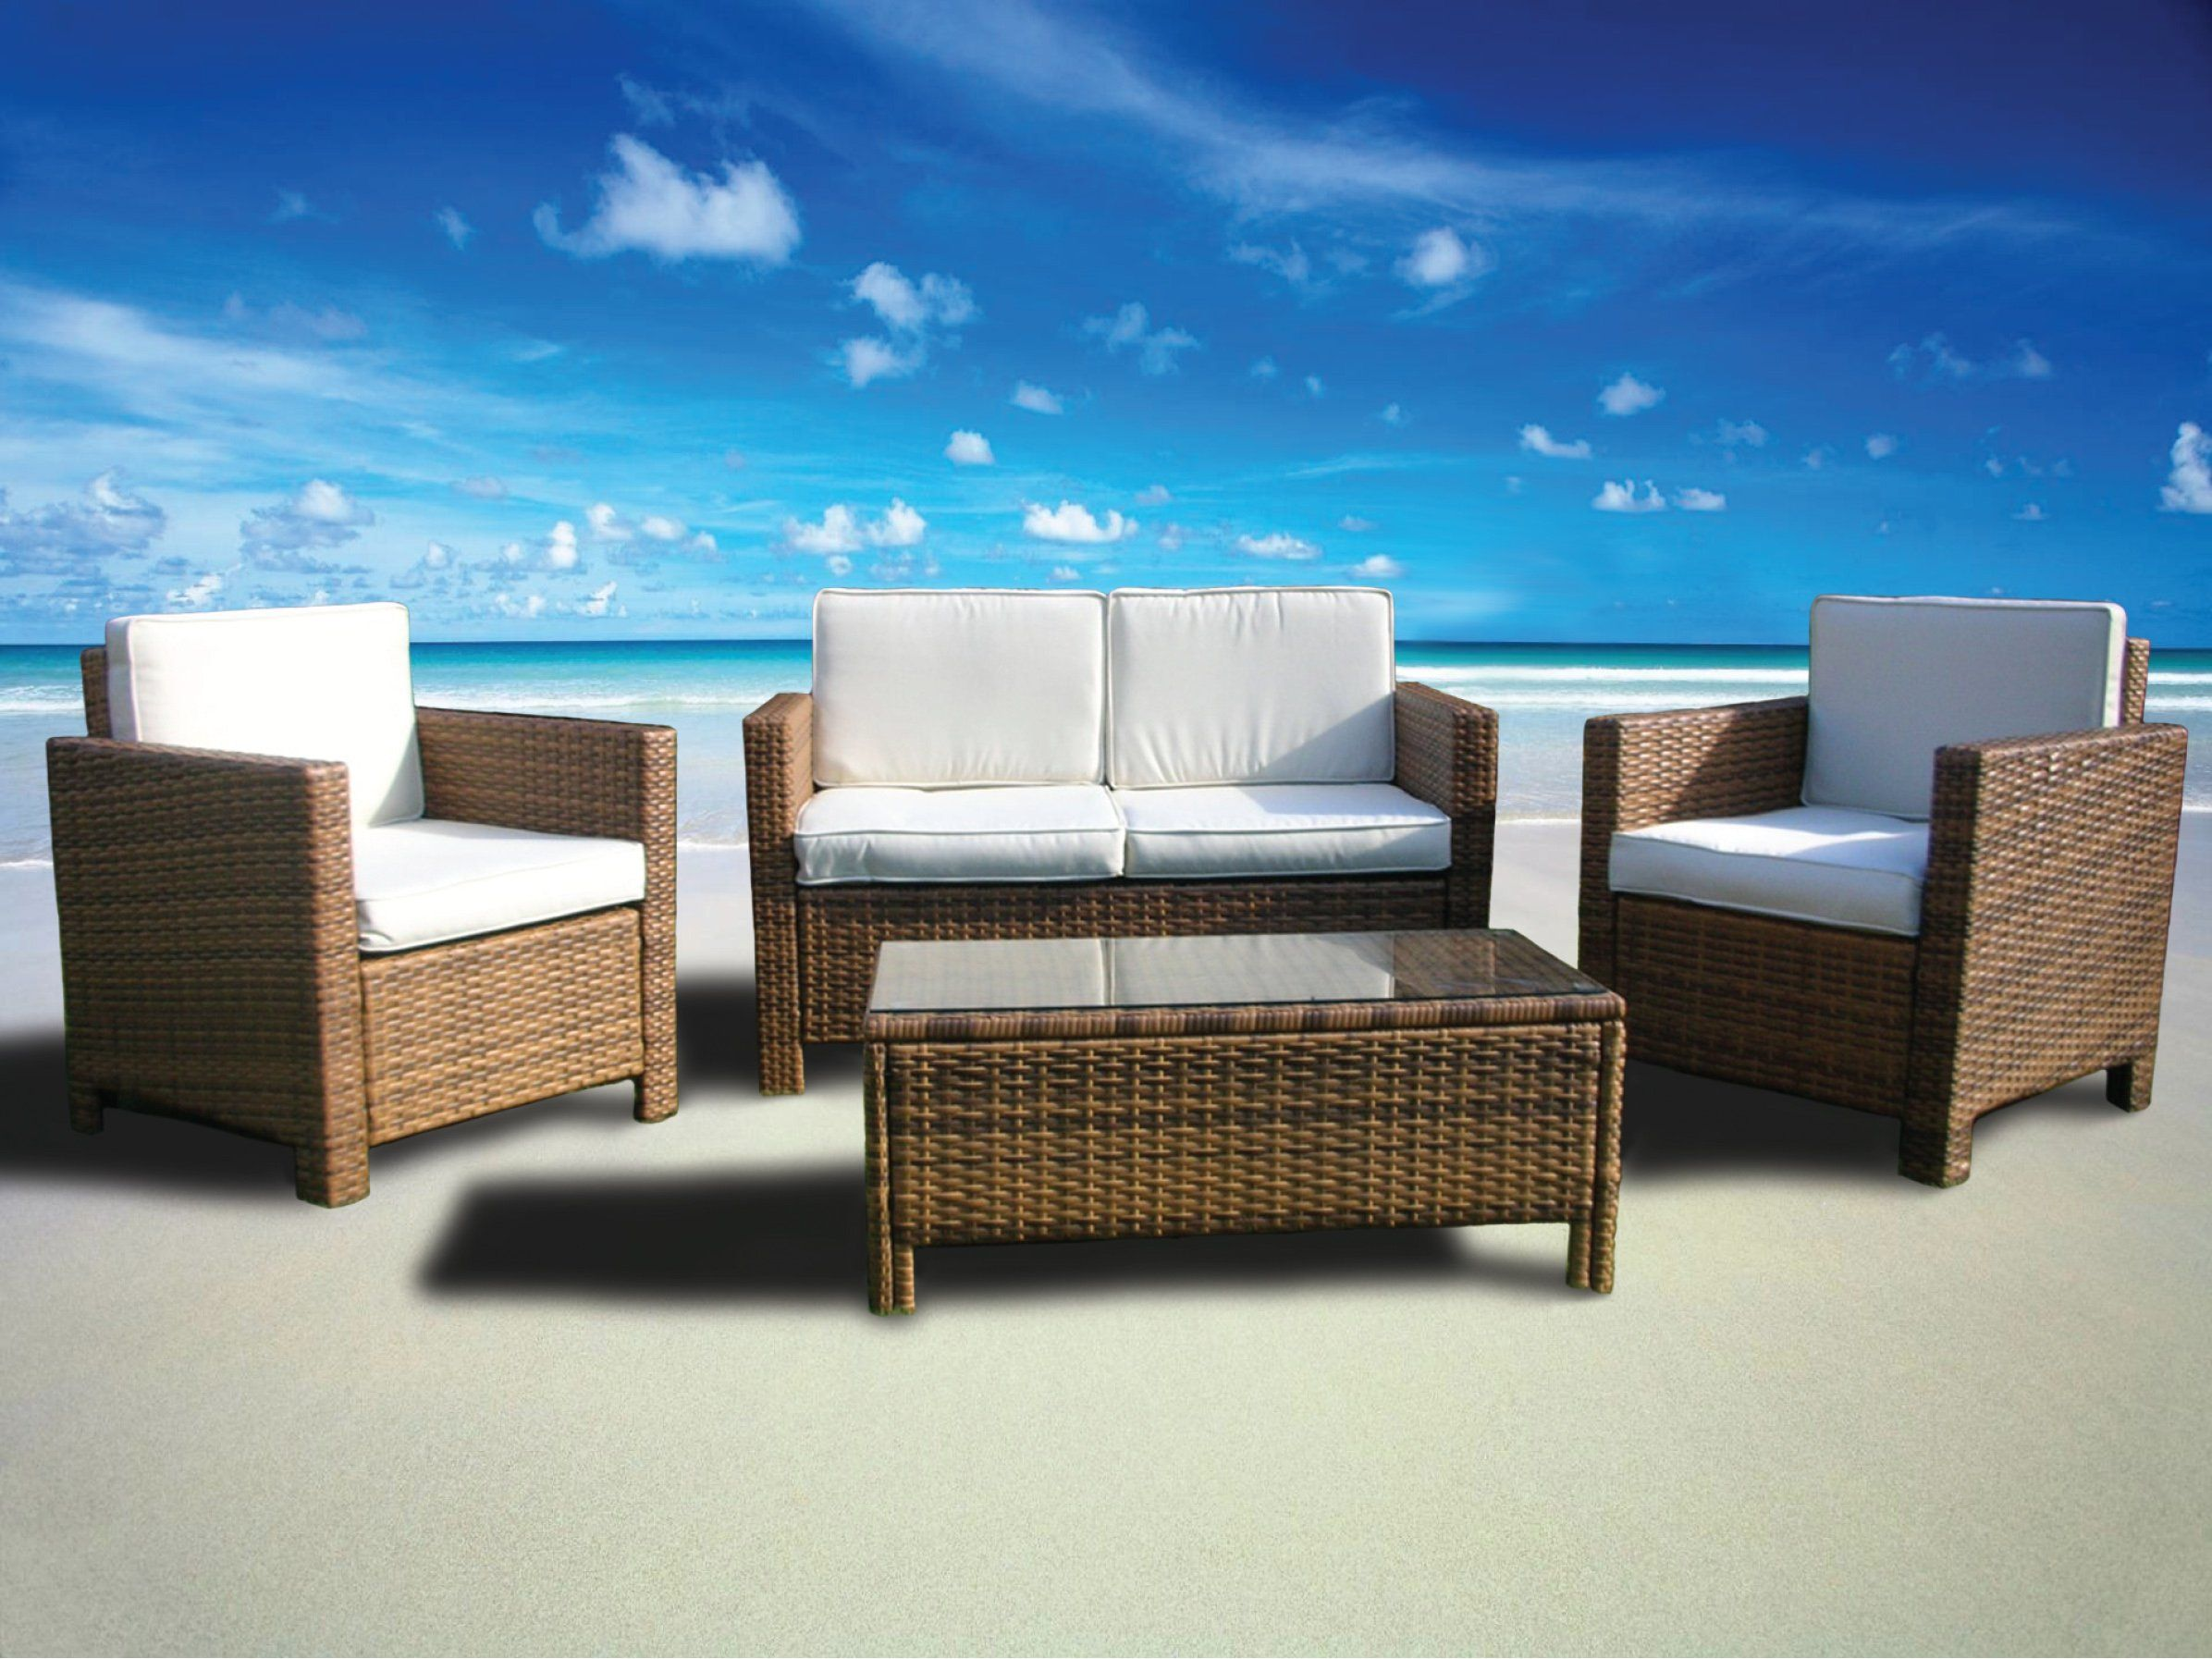 Enjoyable Miami Beach Collection 4 Pc Outdoor Rattan Wicker Sofa Inzonedesignstudio Interior Chair Design Inzonedesignstudiocom